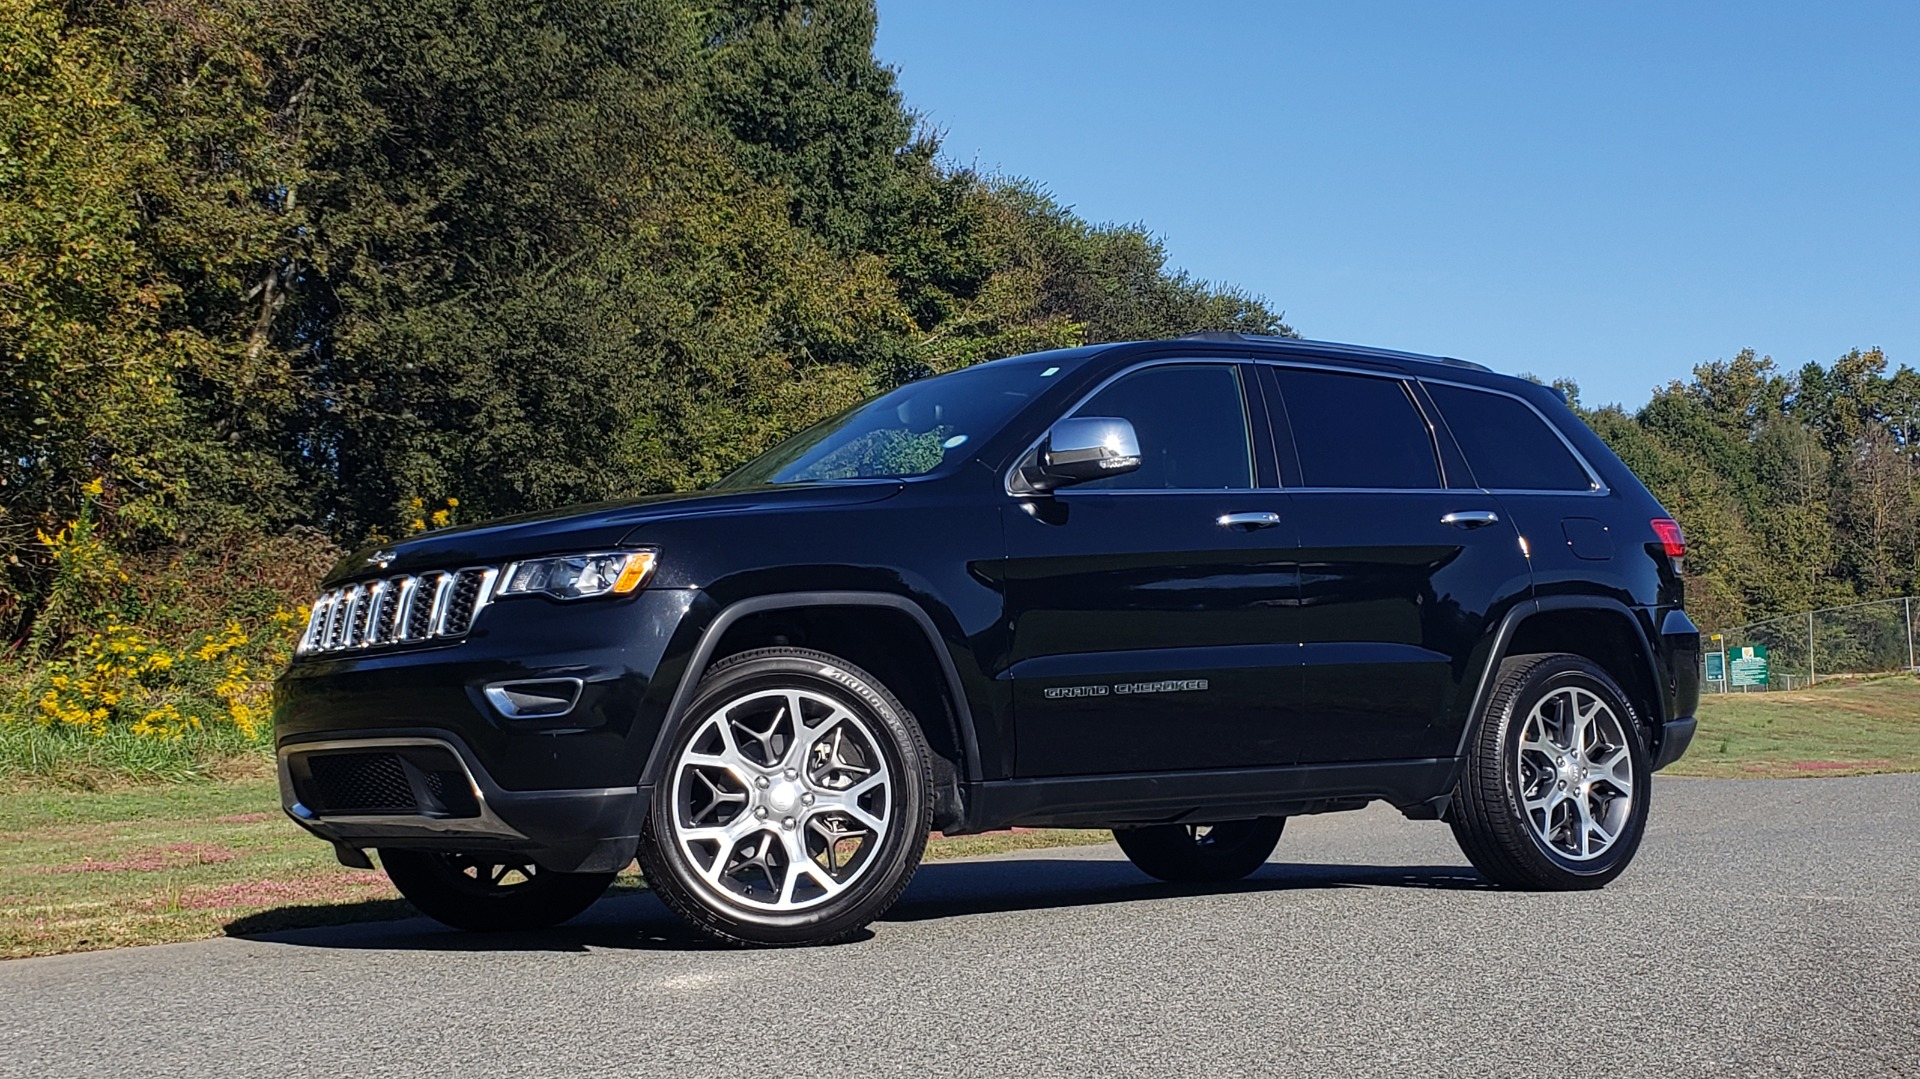 Used 2019 Jeep GRAND CHEROKEE LIMITED 4X4 / NAV / SUNROOF / BLIND SPOT MONITOR / REARVIEW for sale Sold at Formula Imports in Charlotte NC 28227 2